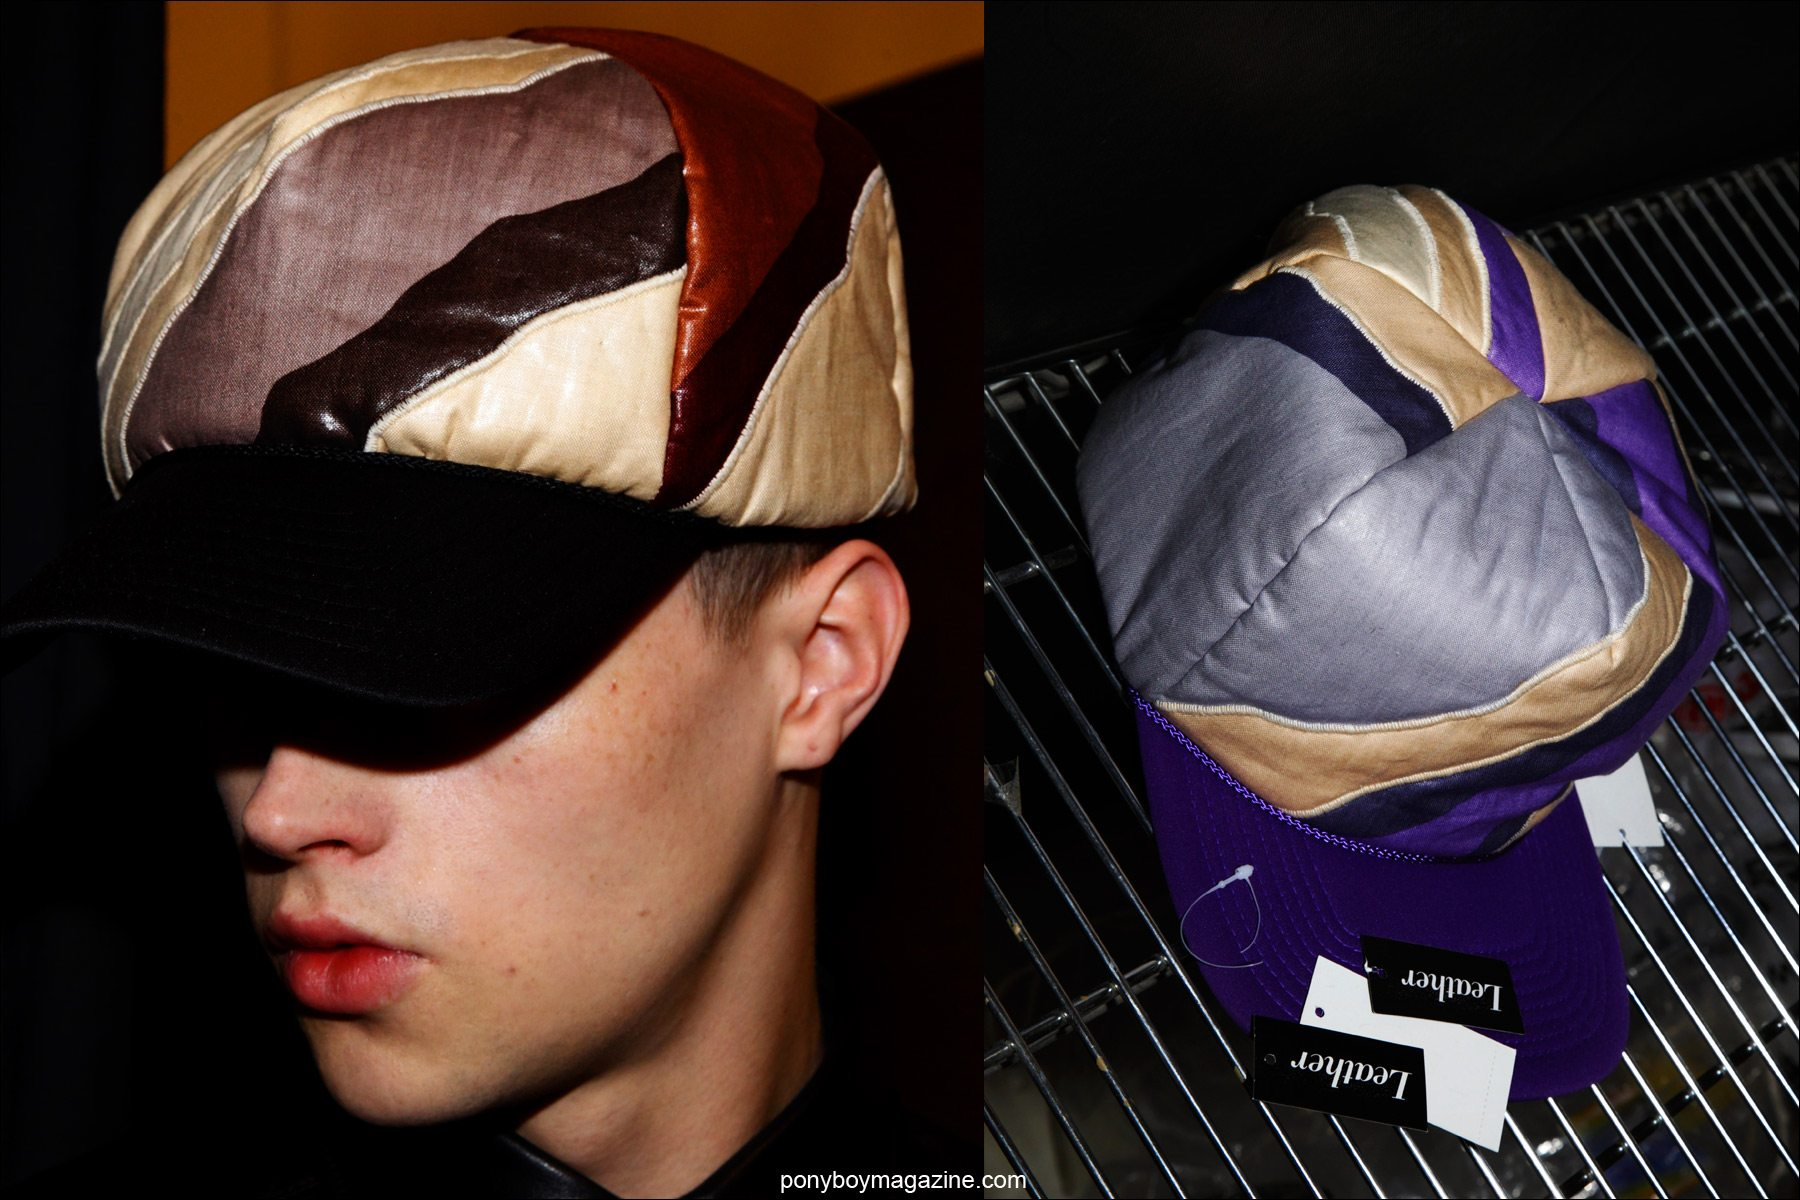 Detail shots of caps by menswear designer Martin Keehn, F/W15 collection, photographed at Pier 59 Studios NY by Ponyboy magazine photographer Alexander Thompson.